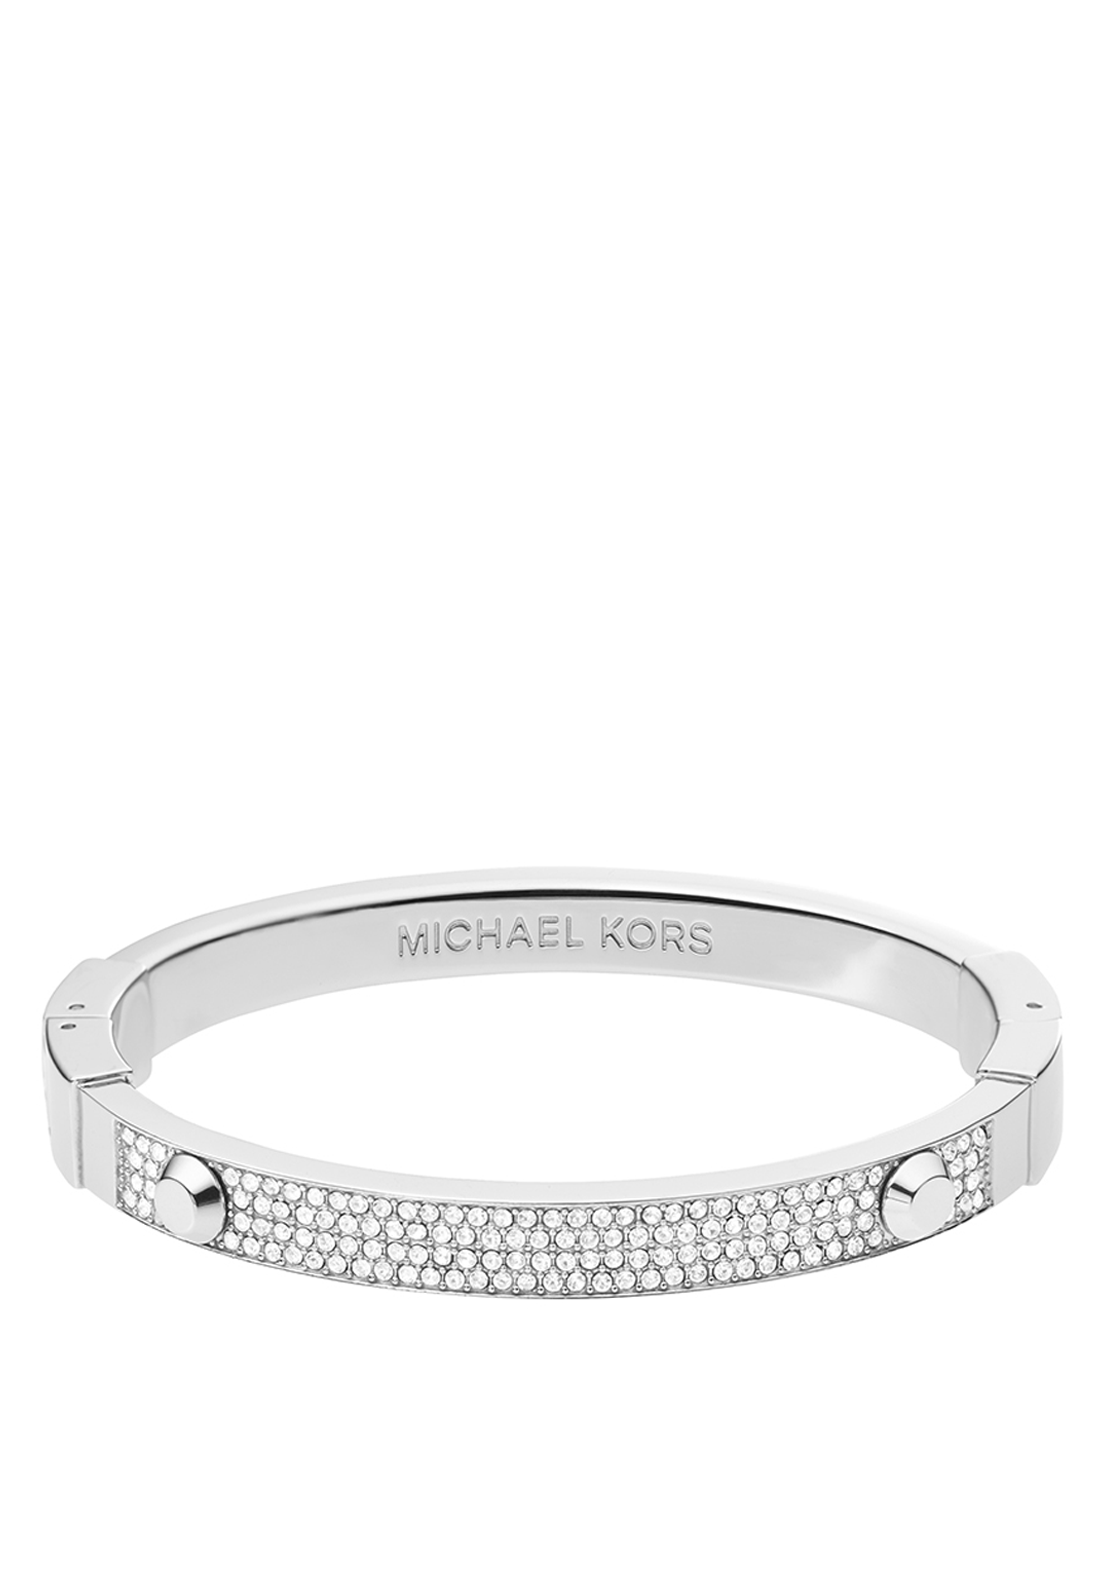 Michael Kors Womens Astor Crystal Bangle, Silver